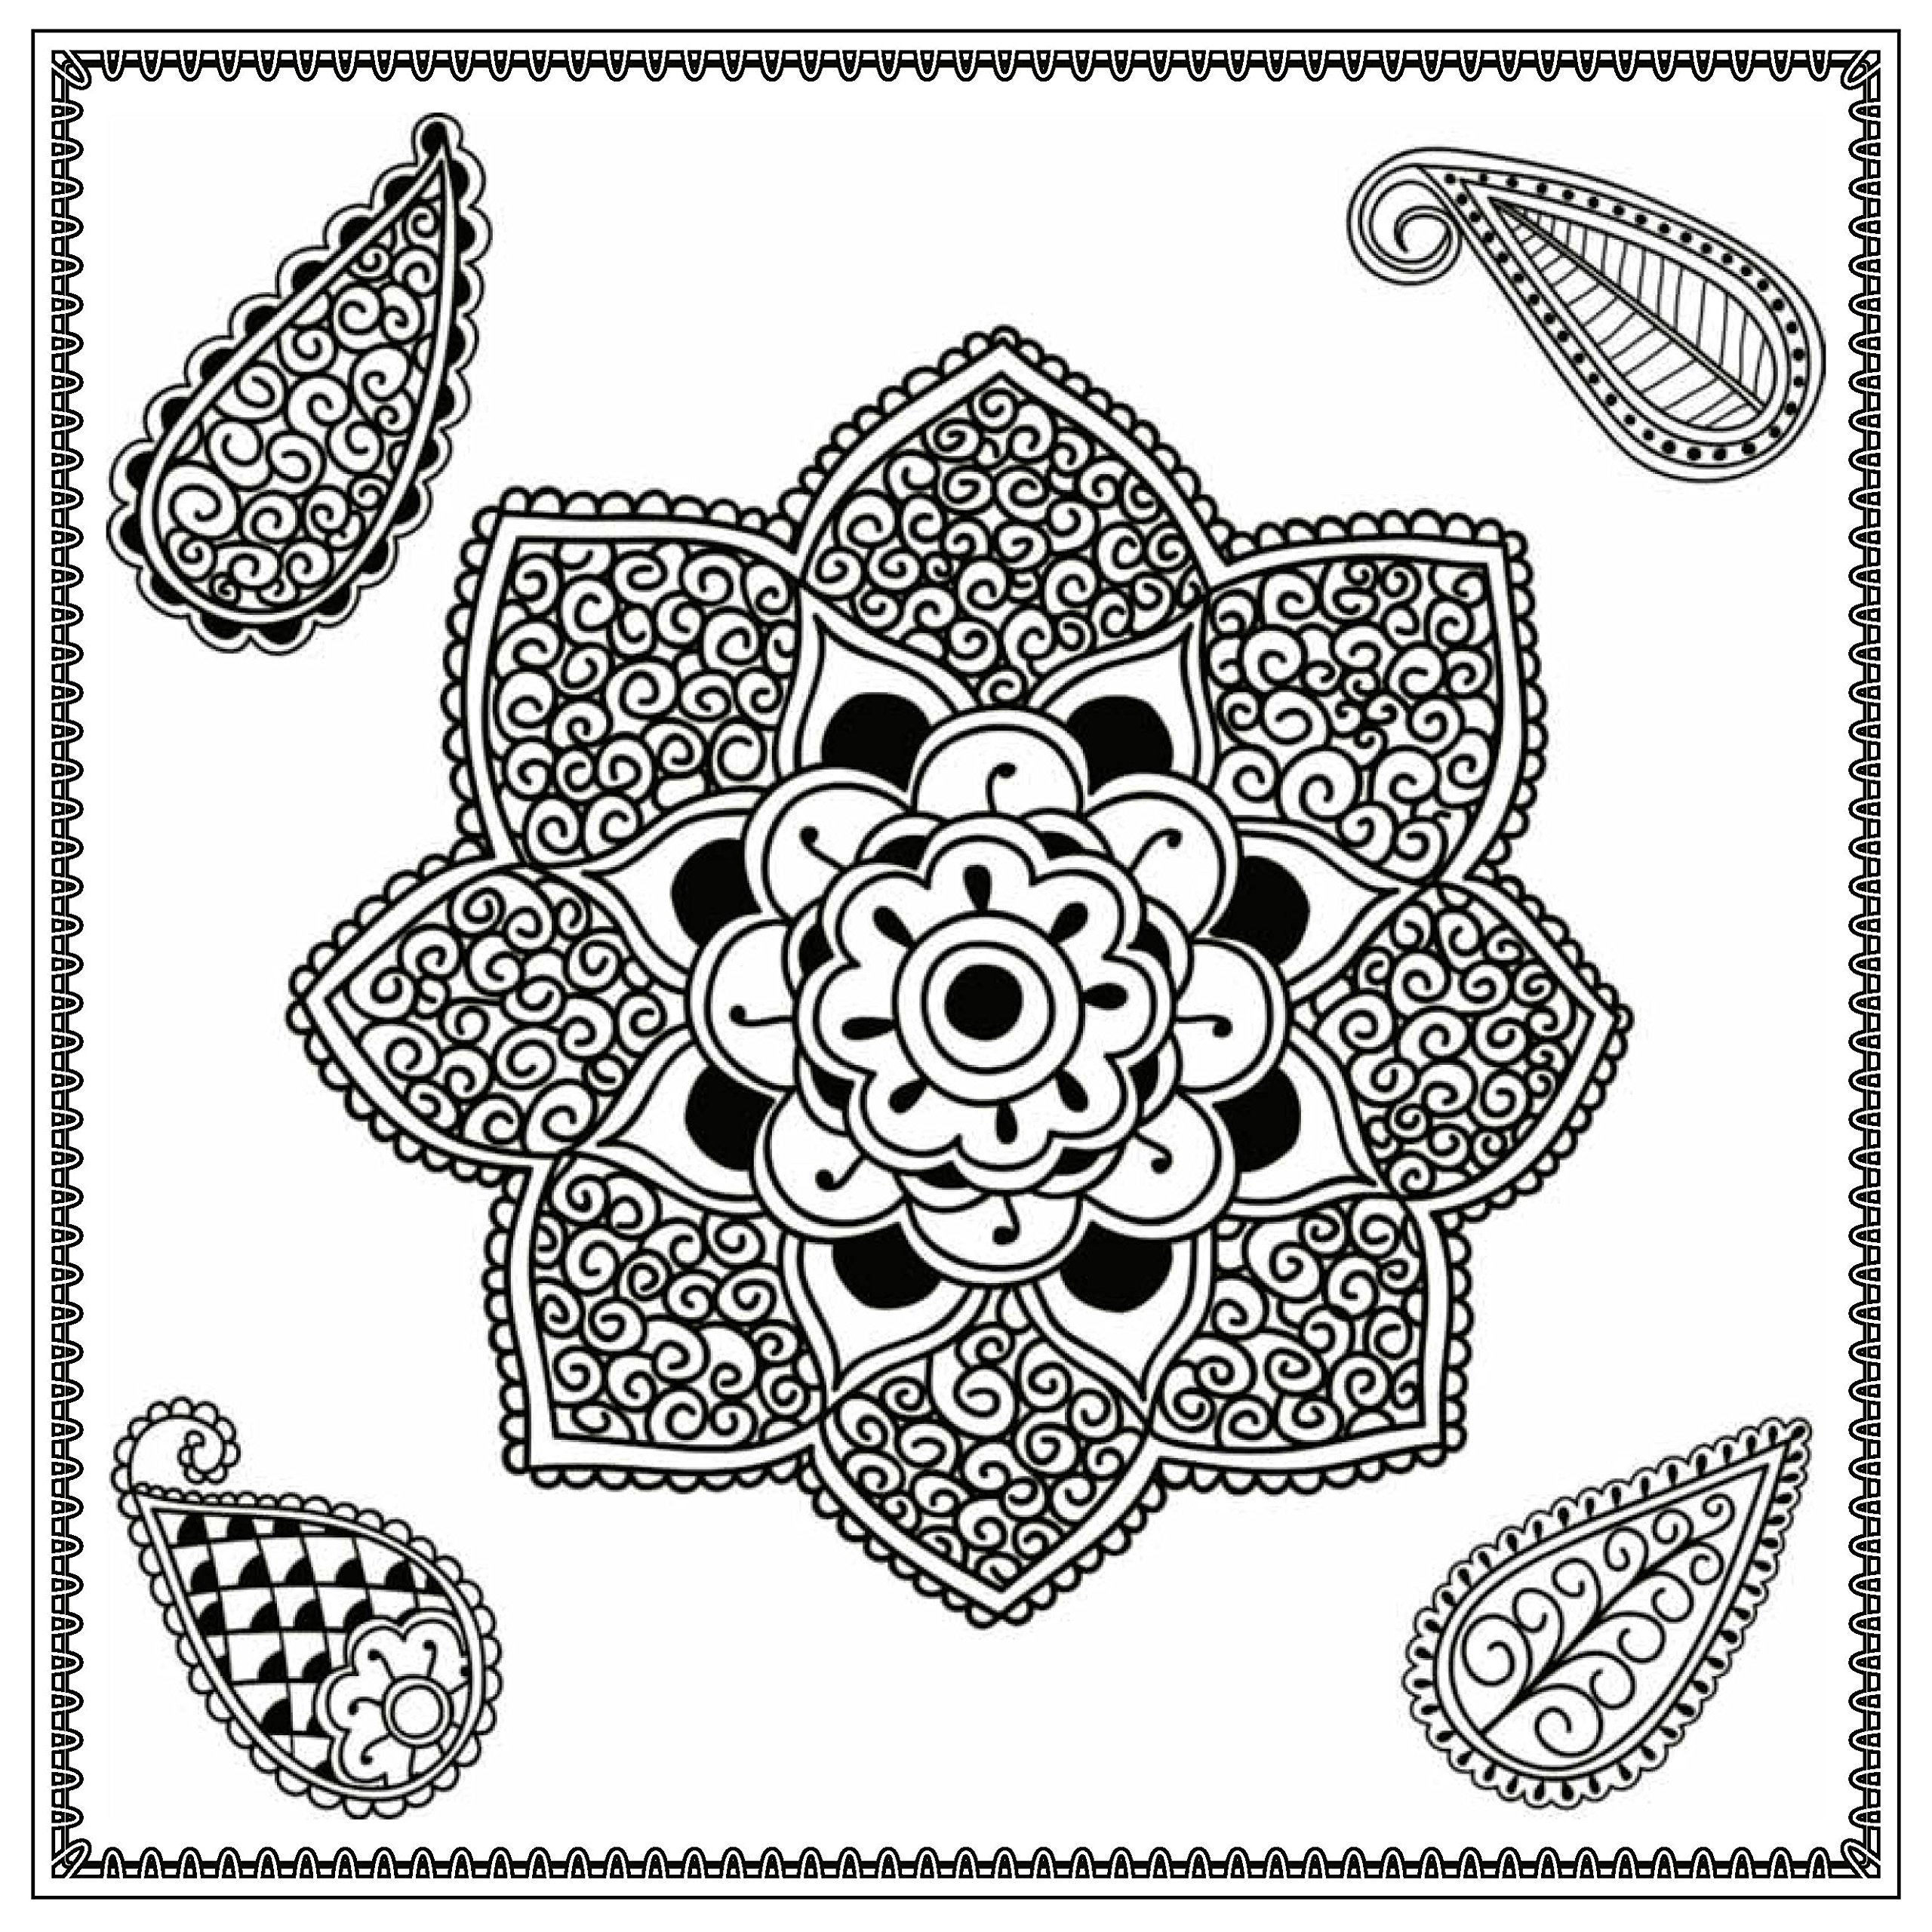 Mandala Magic Amazing Mandalas Coloring Book For Adults Color ArsEdition 9781438006383 Amazon Books